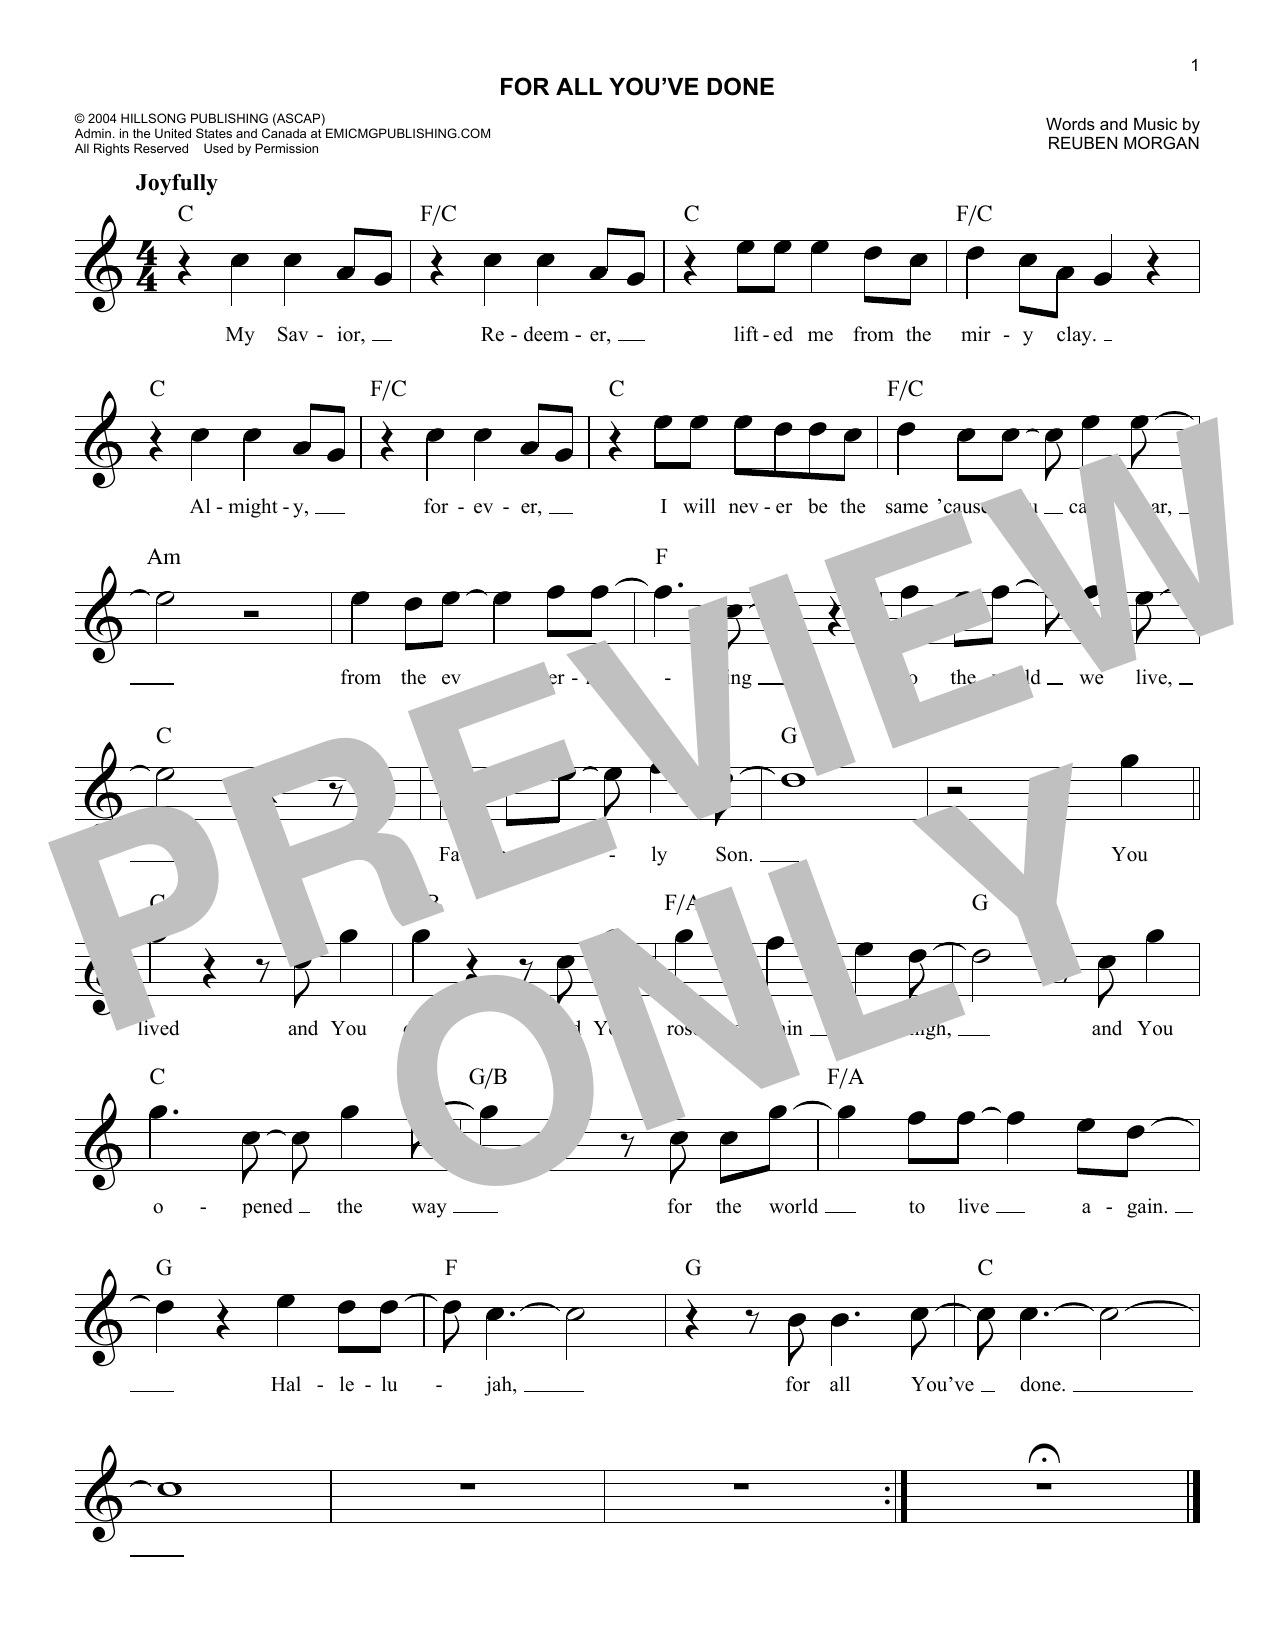 For All You've Done Sheet Music